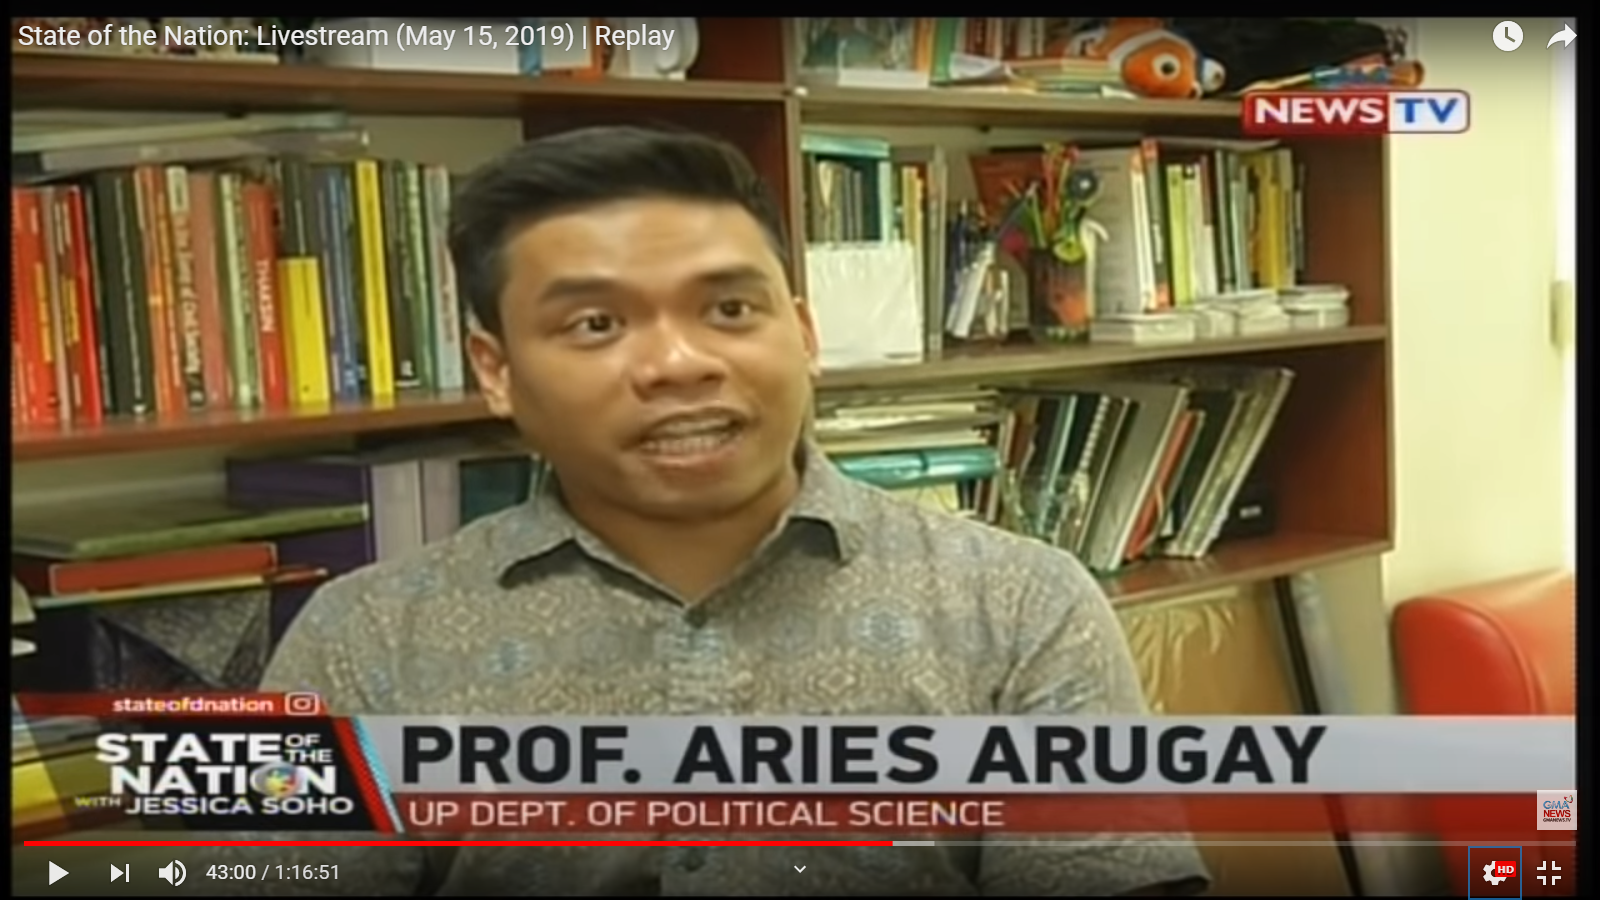 State of the Nation: Dr. Aries Arugay